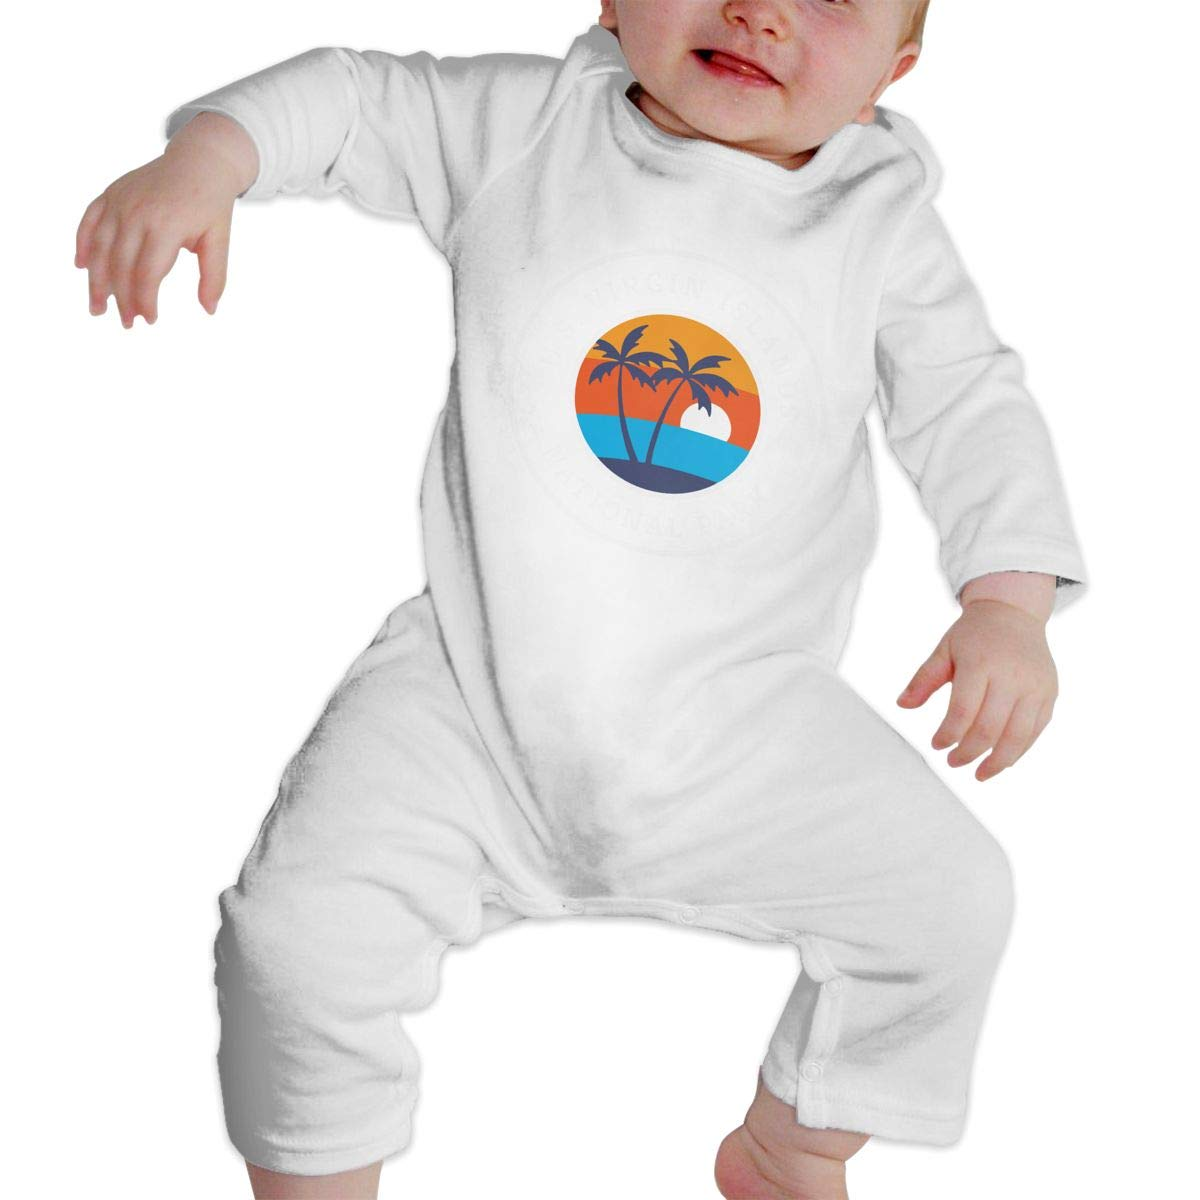 Suit 6-24 Months Toddler Round Collar Virgin Island National Park Long Sleeve Bodysuits 100/% Cotton